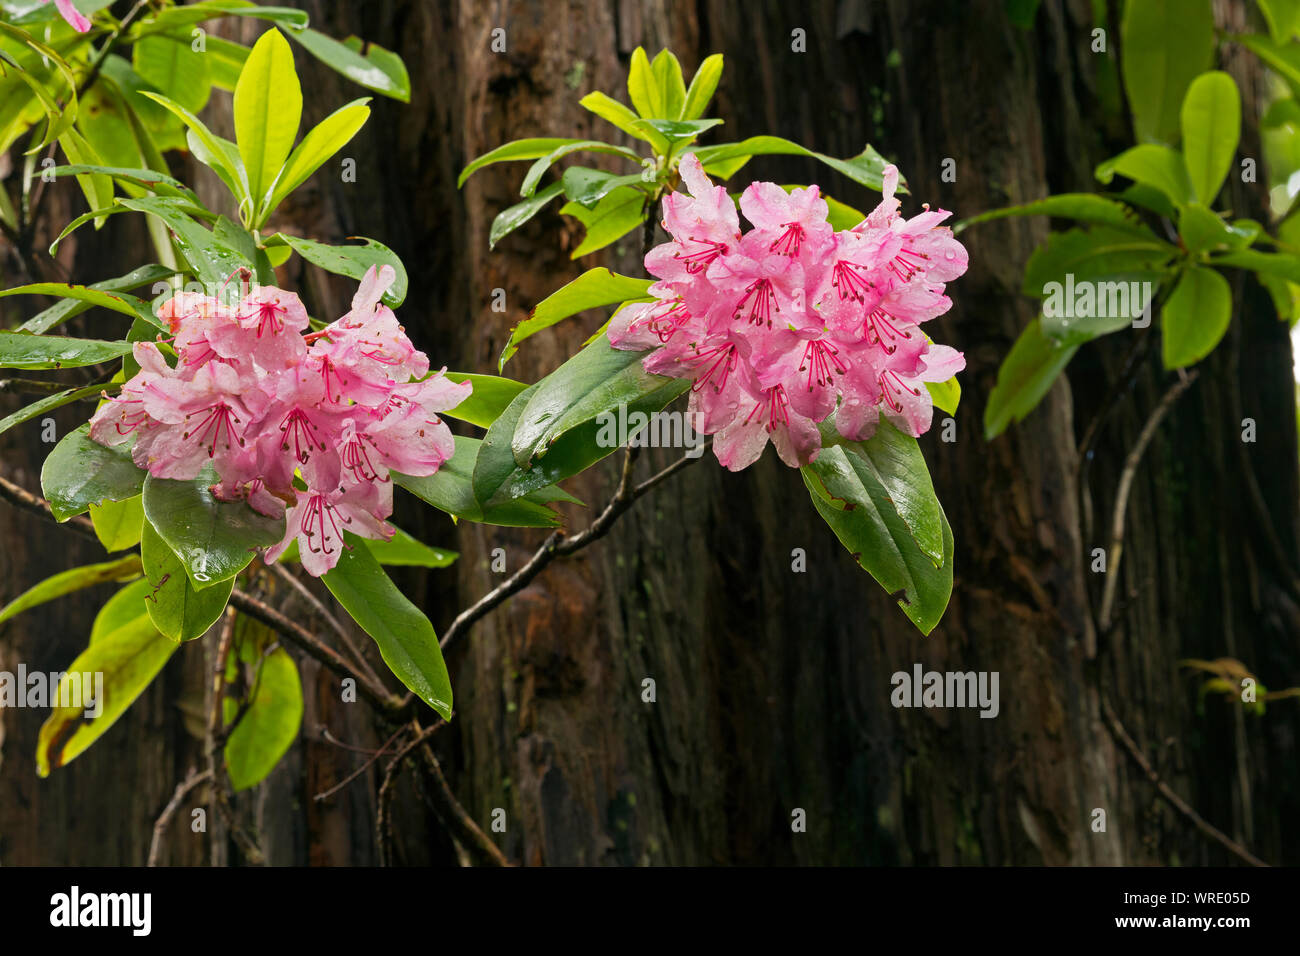 CA03516-00...CALIFORNIA - Rhododendrons and a large redwood tree after a rain storm on the Hiouchi Trail in Jedediah Smith Redwoods State Park, part o Stock Photo